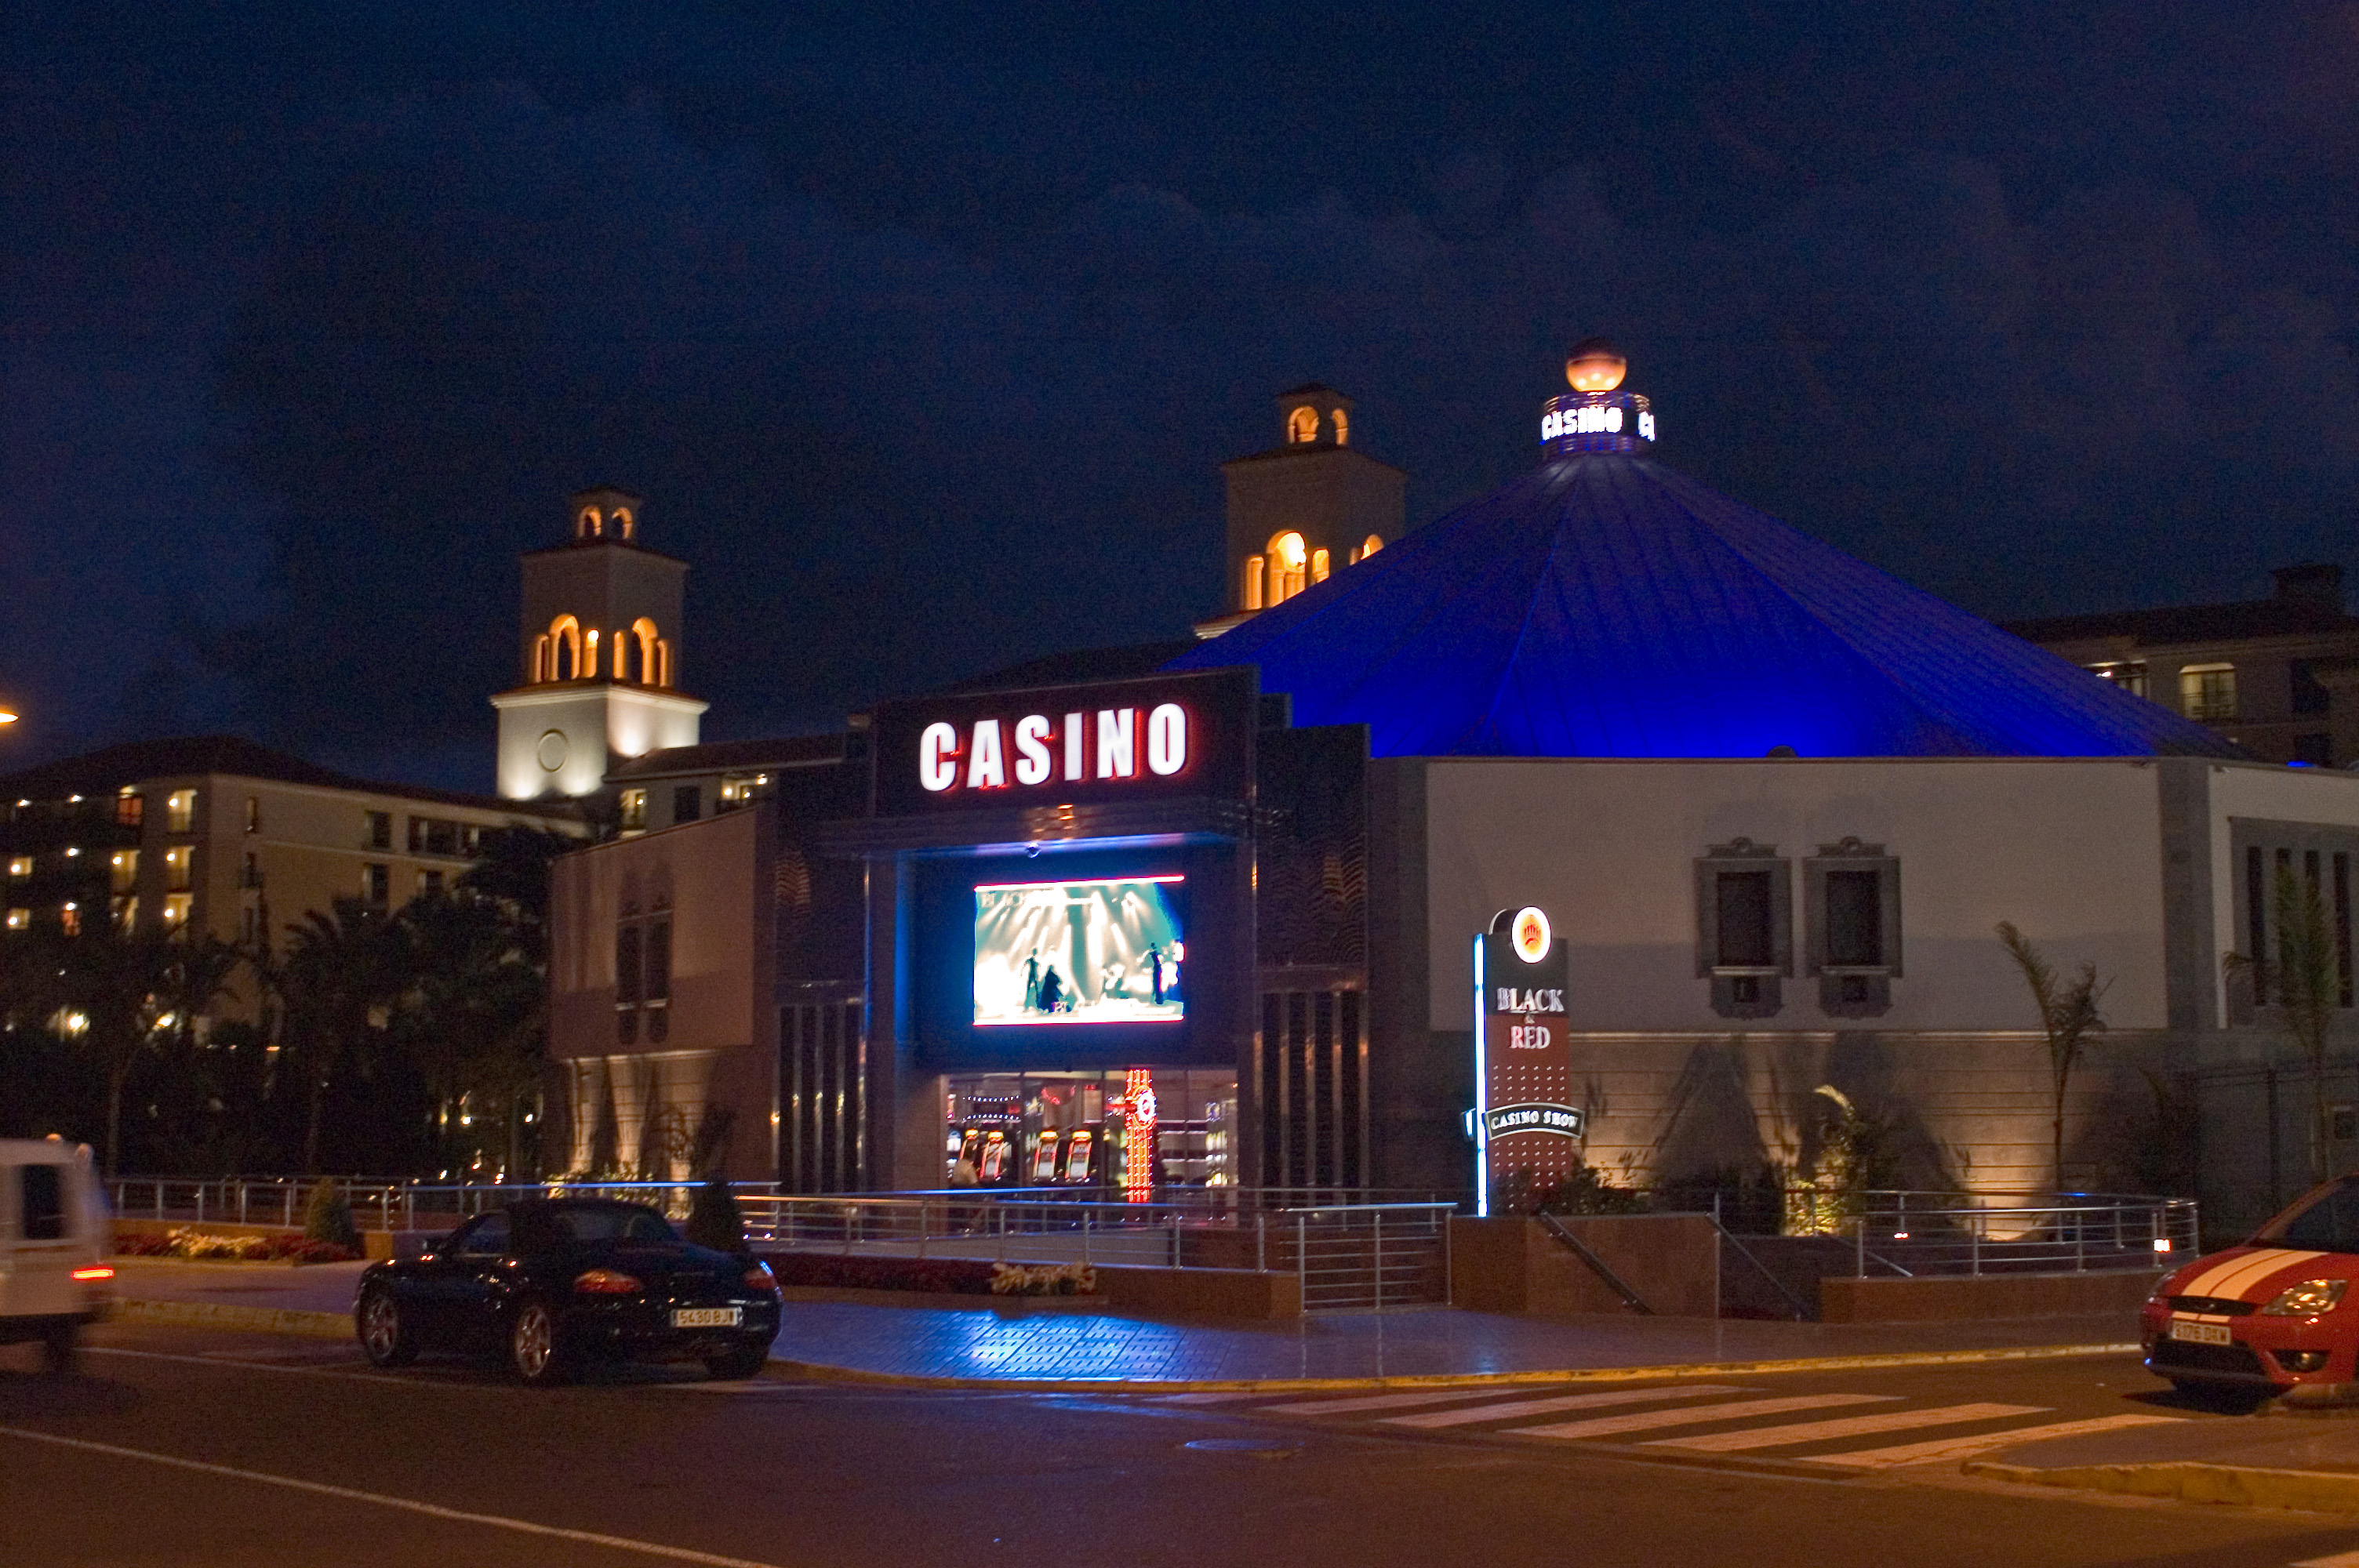 Casino maspalomas mississippi casino job postings